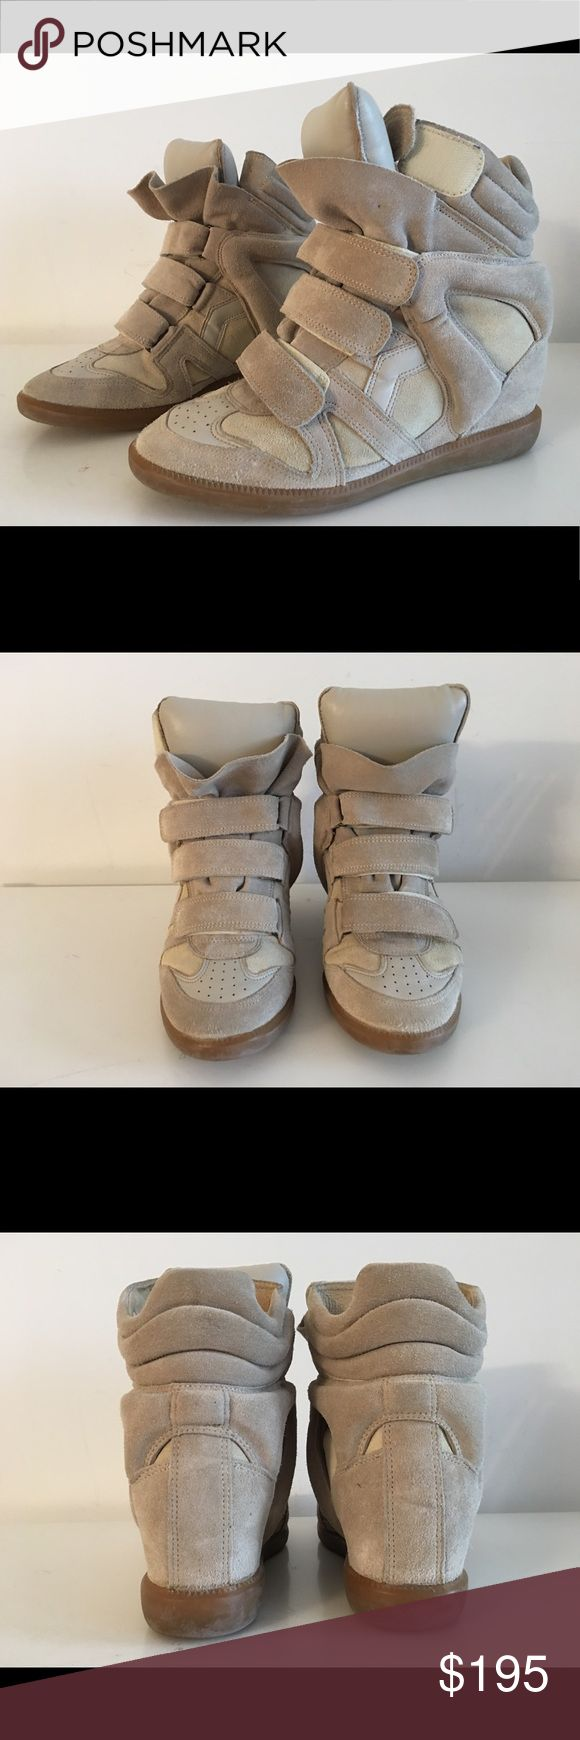 "ISABEL MARANT BECKETT WEDGE HEEL SNEAKERS SIZE 40 ISABEL MARANT BECKETT WEDGE HEEL SNEAKERS SIZE 40 HIDDEN WEDGE APPROX 3 1/2"" ROUND-TOE HIGH TOP WITH CONCEALED WEDGE RUBBER SOLE AND VELCRO CLOSURES AT UPPERS  USED IN GOOD CONDITION Isabel Marant Shoes Sneakers"